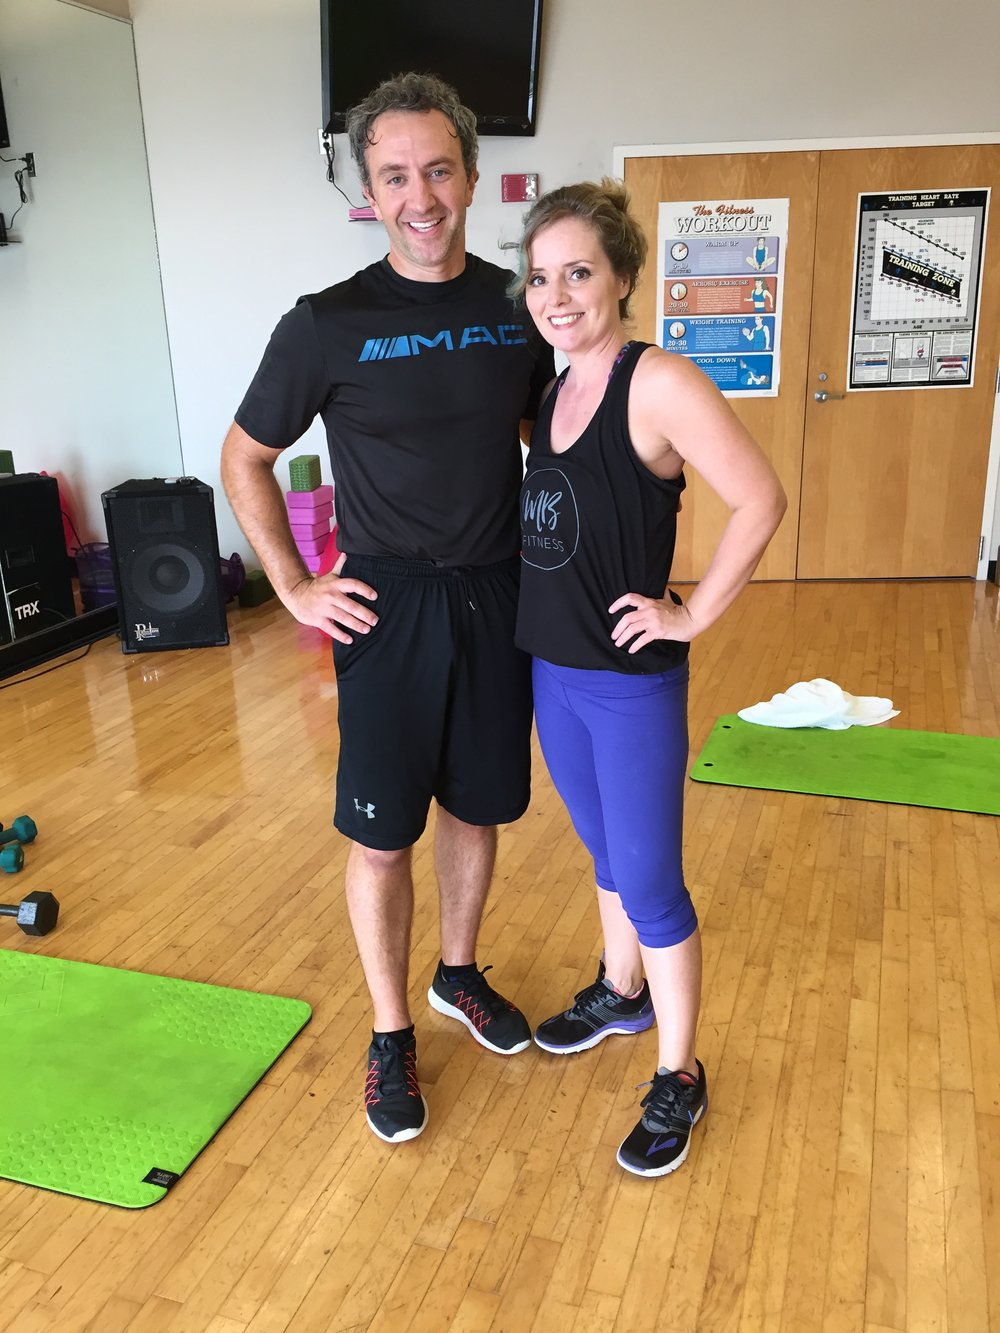 Rick Clementz - Group Fitness